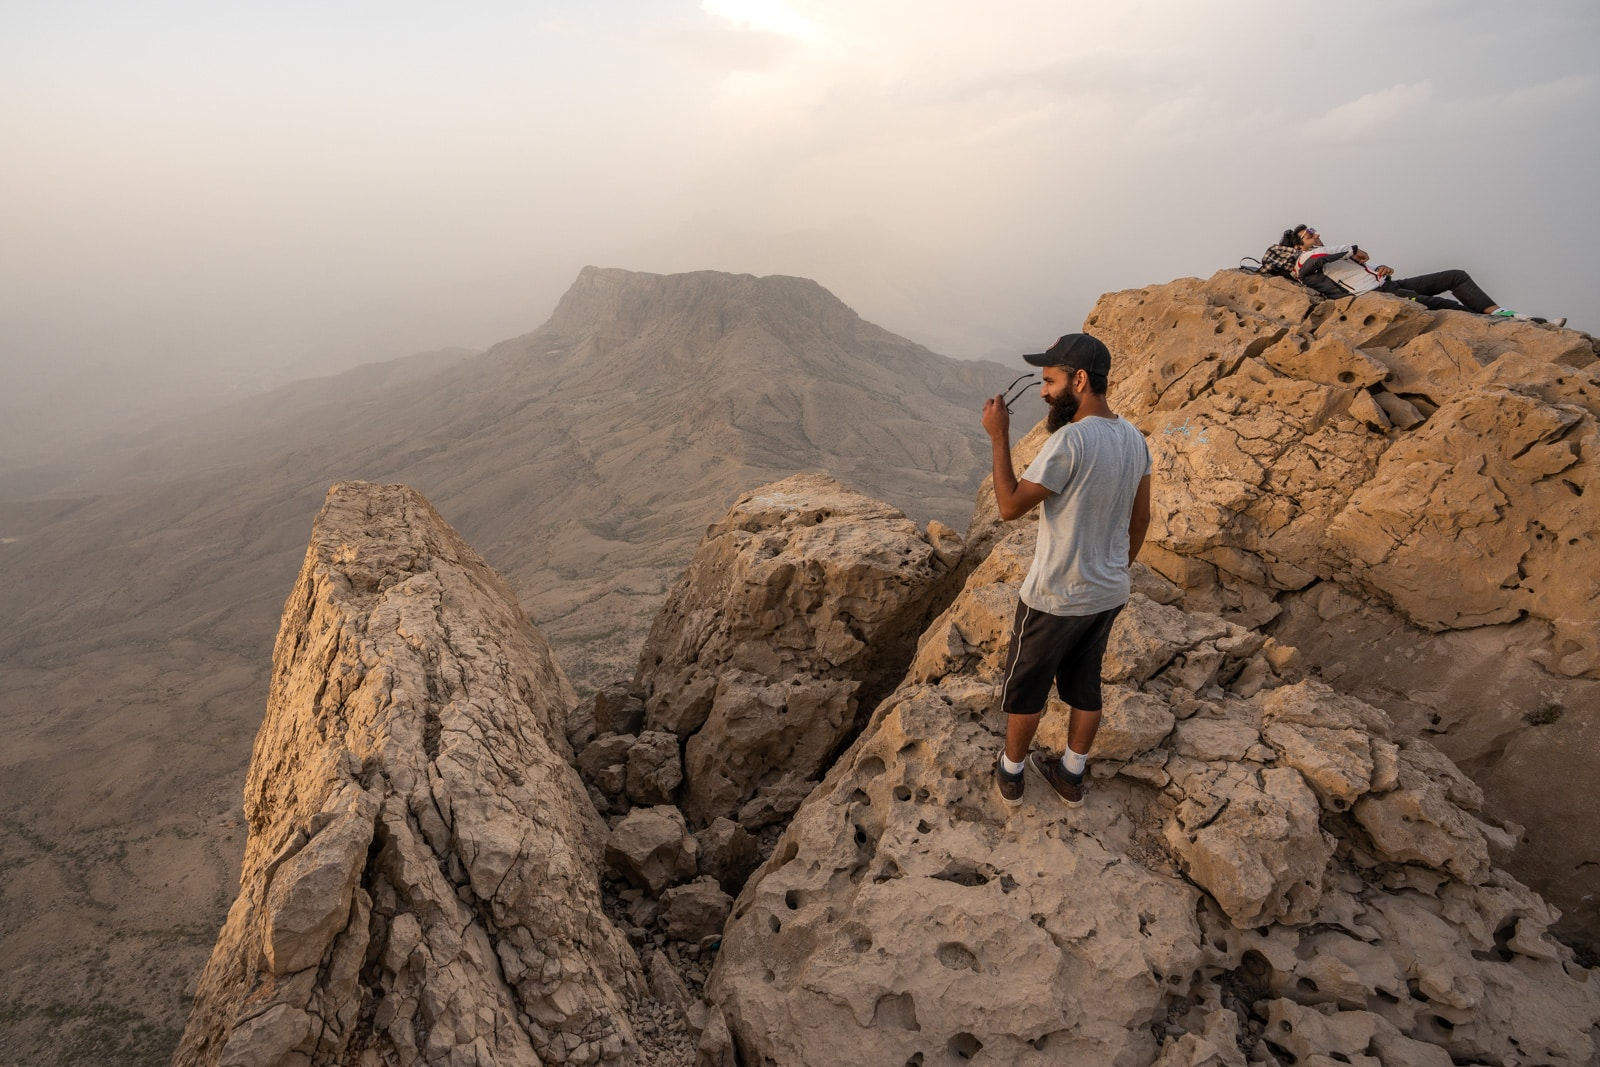 Reflections - Acid trip sunset over Gorakh Hill, Pakistan with boys on the rocks - Lost With Purpose travel blog